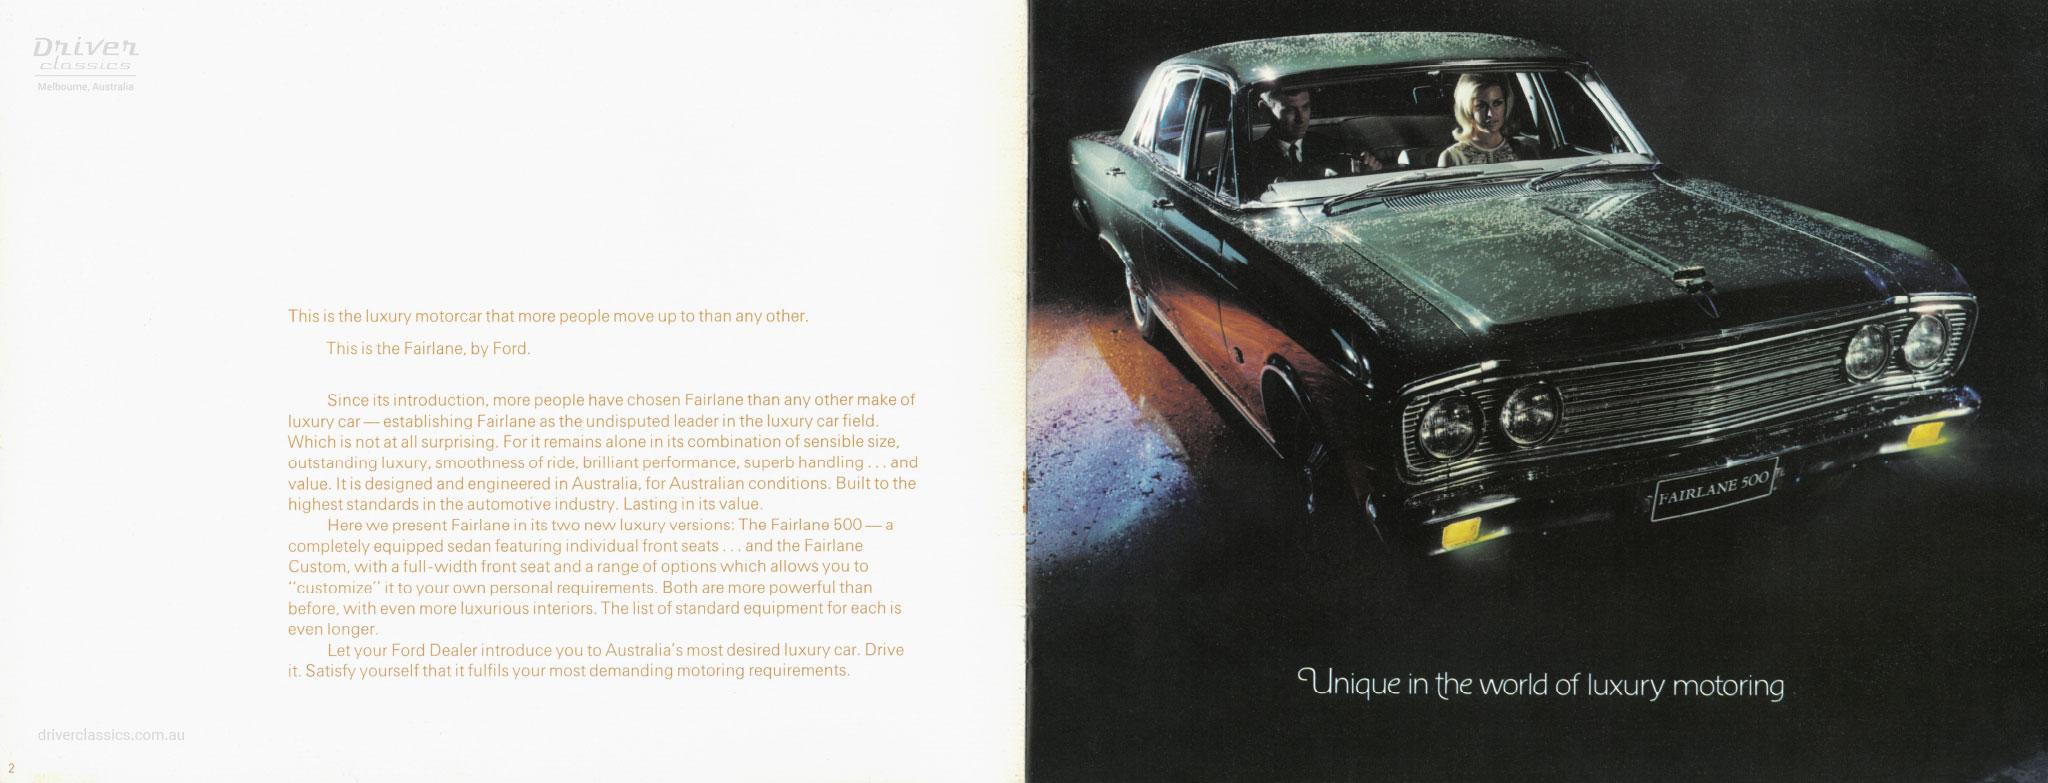 Page from 1968 Ford Fairlane 500 brochure, showing front